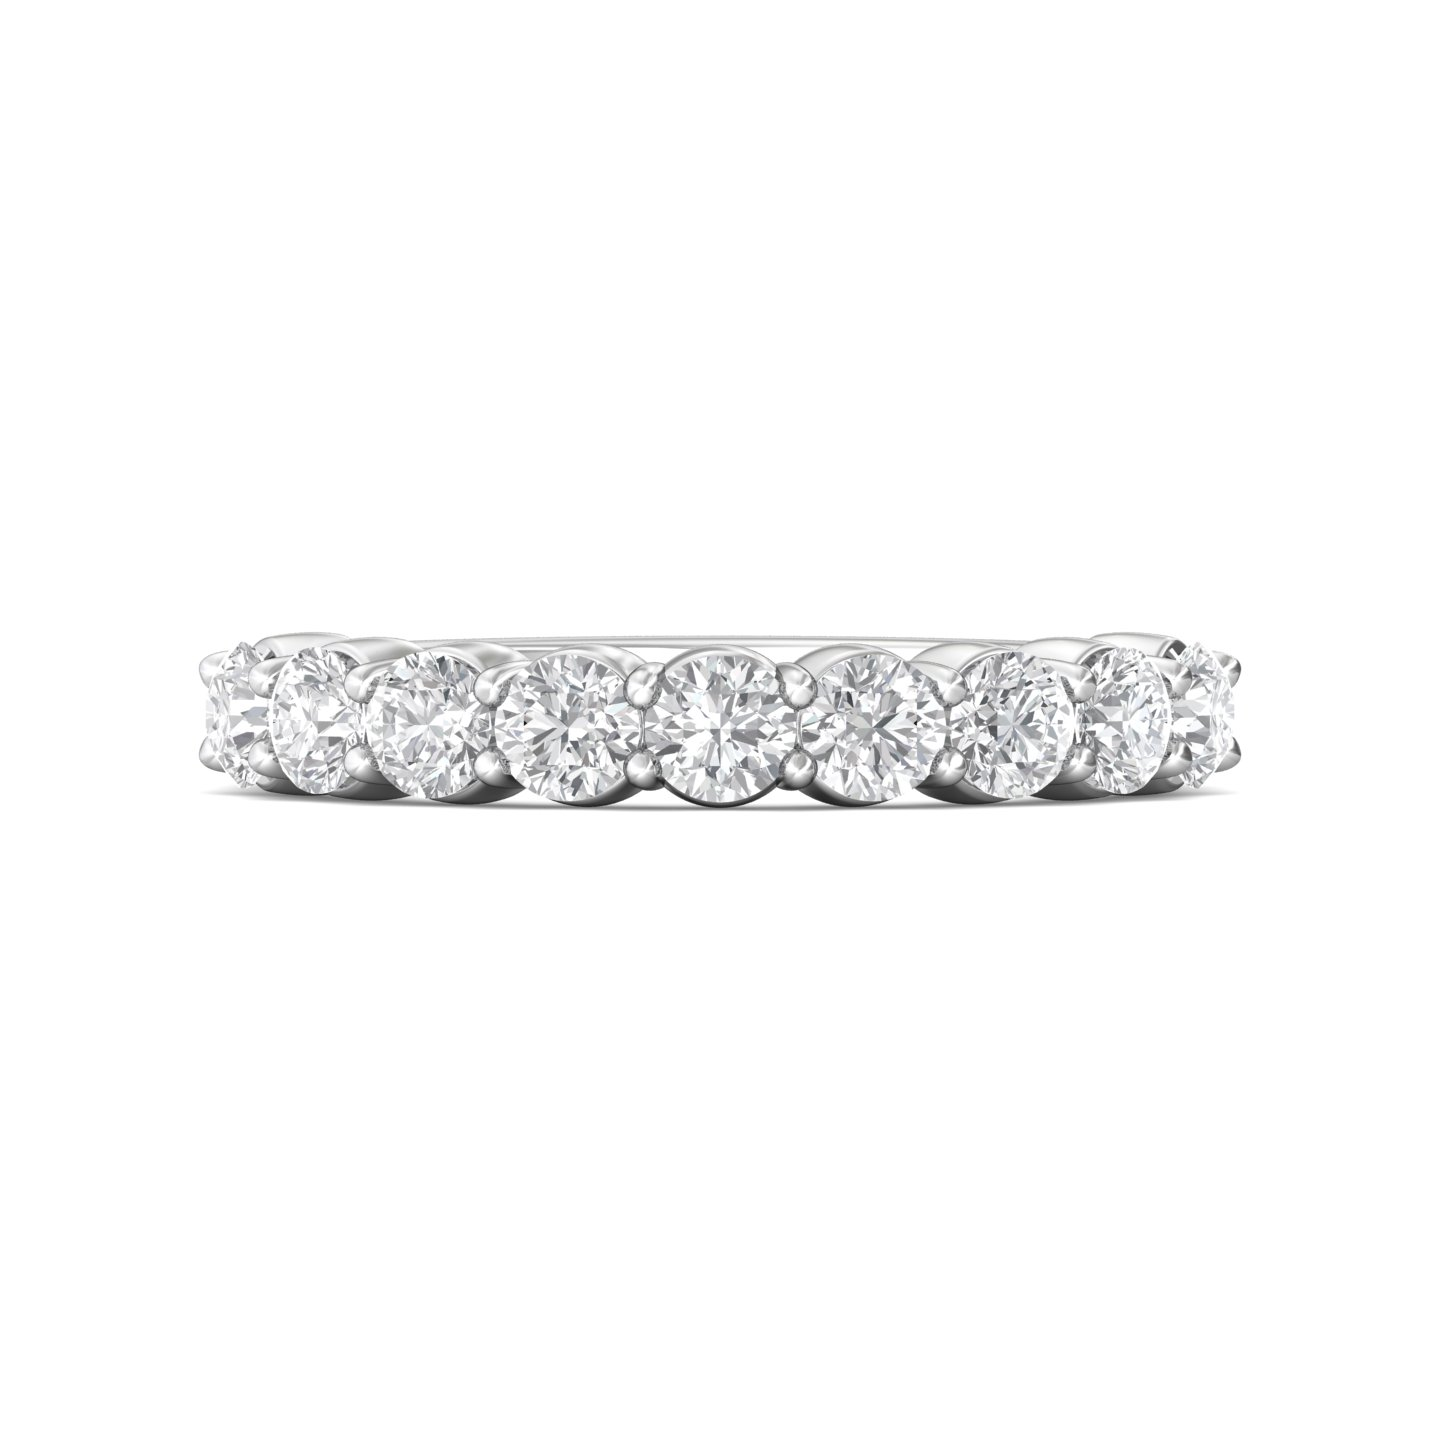 Rings - 14K White Gold FlyerFit Shared Prong Wedding Band